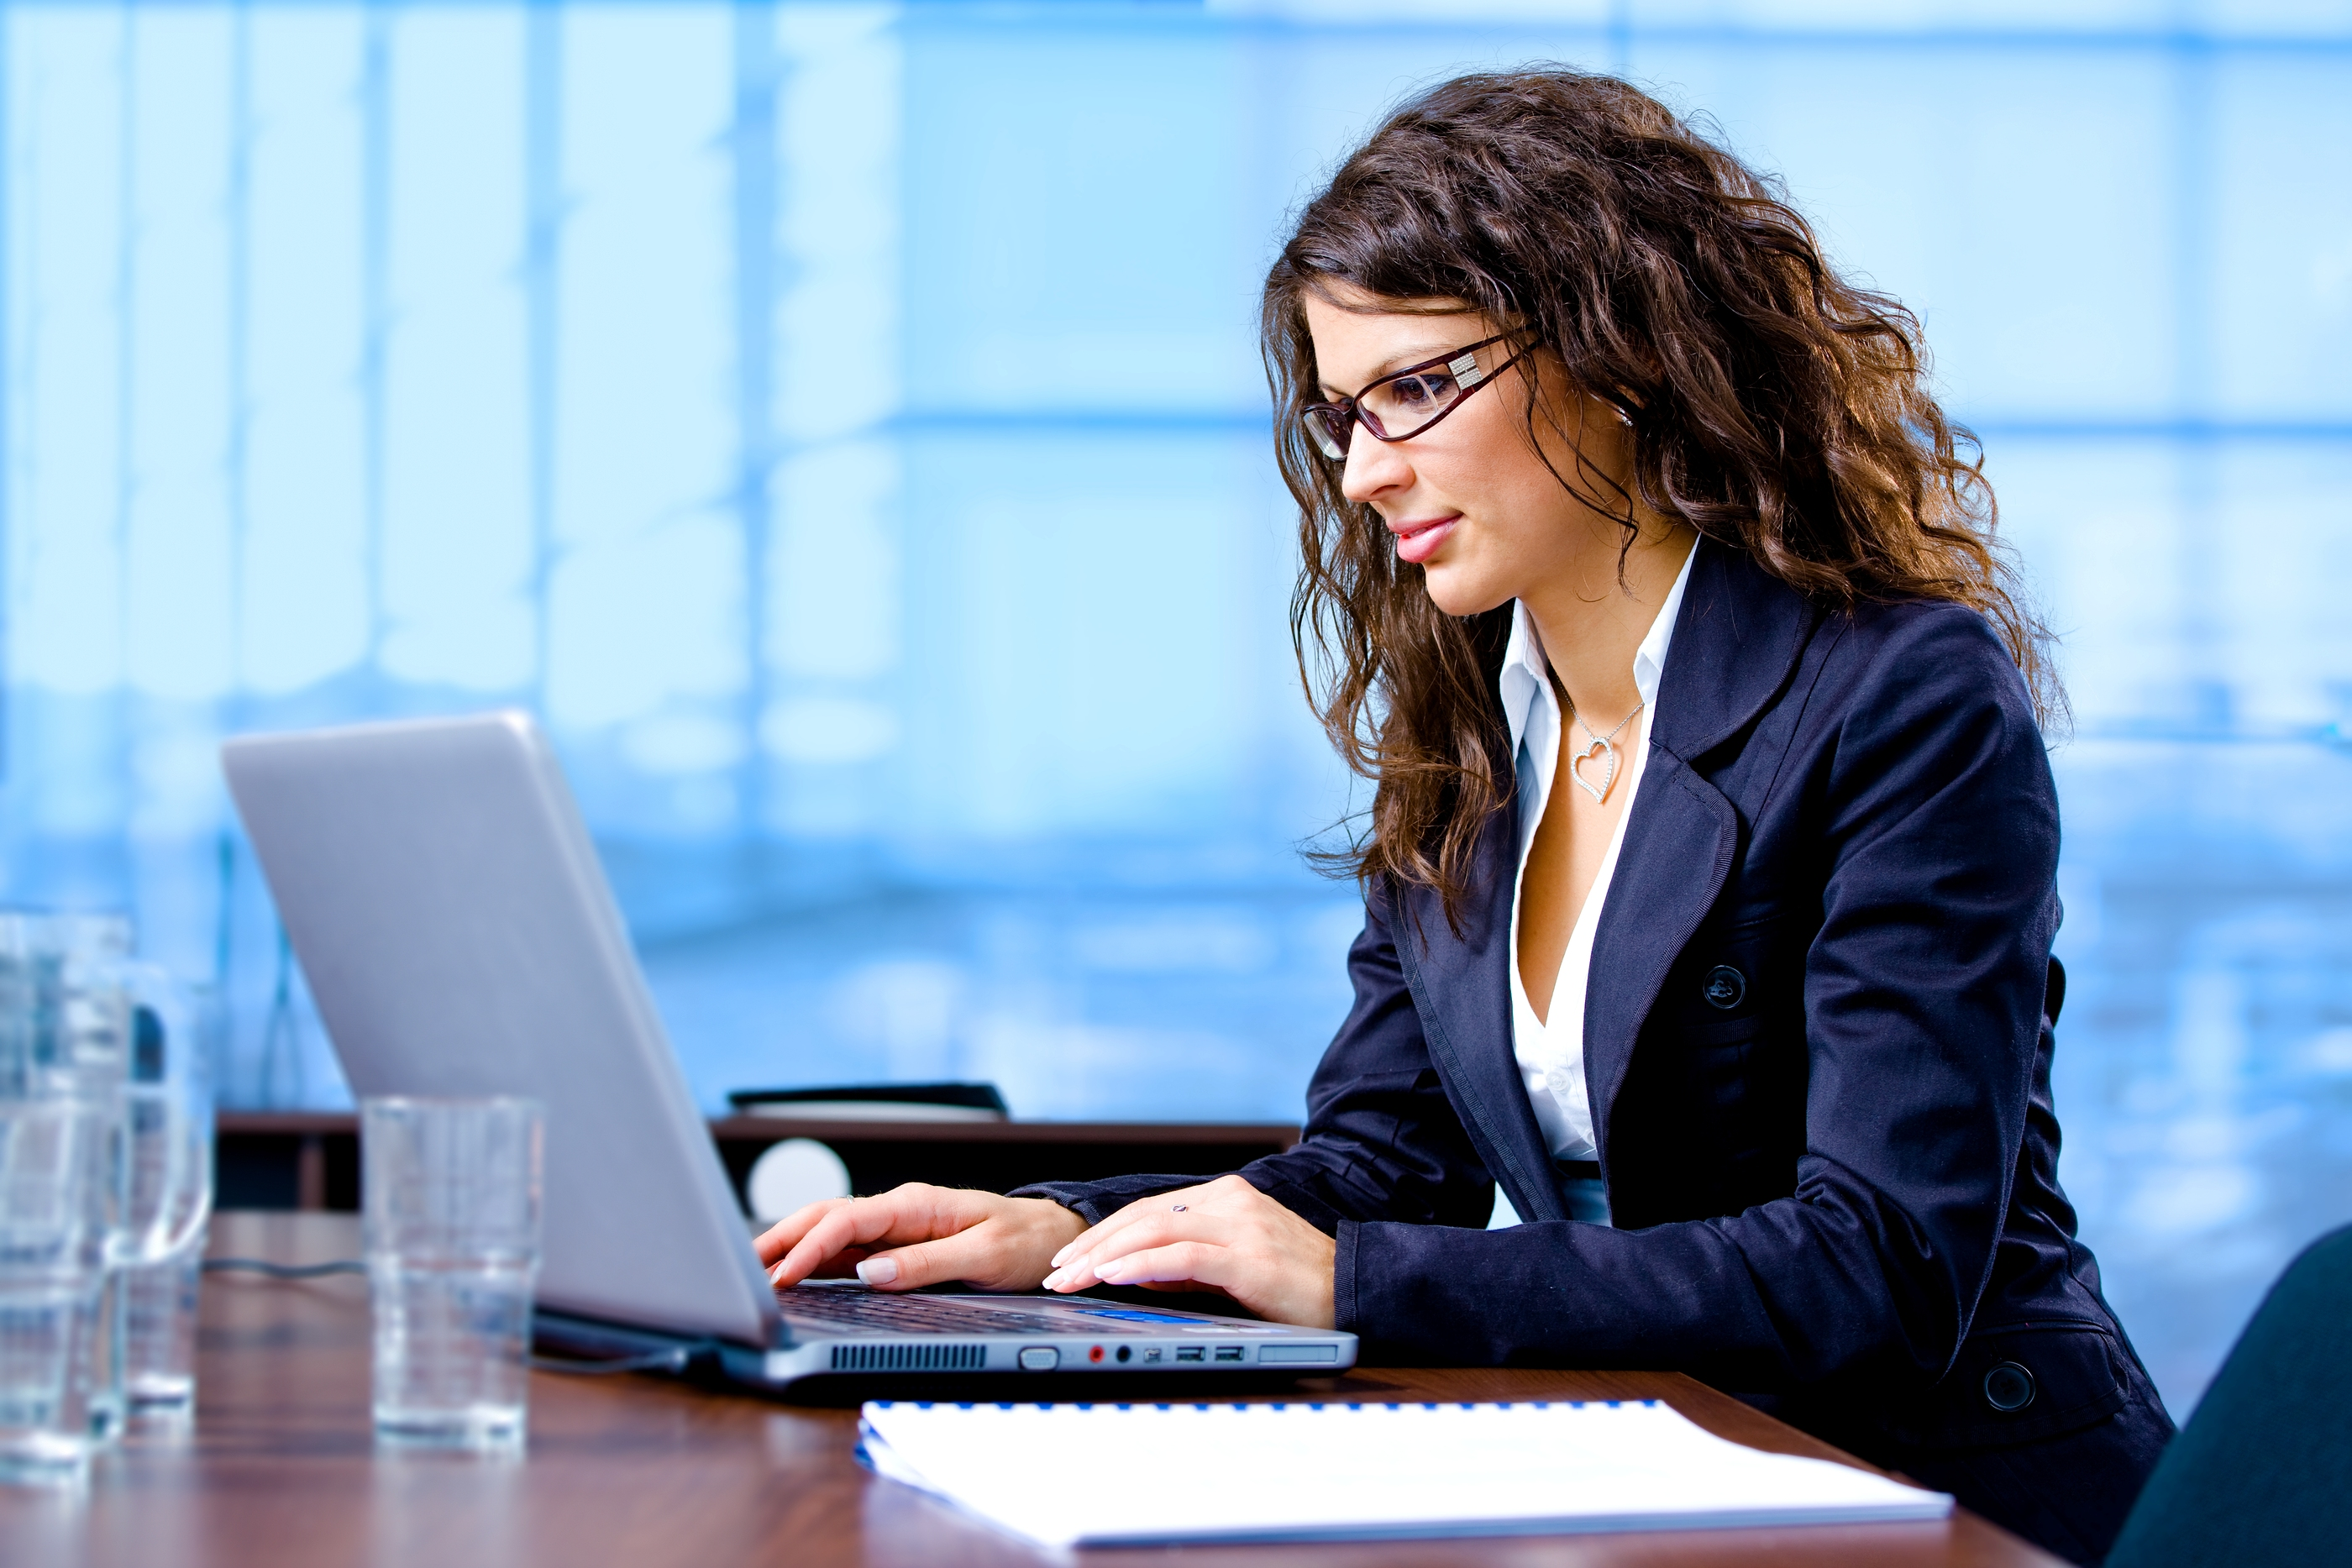 https://confidentcommunicators.files.wordpress.com/2014/08/bigstock-businesswoman-working-on-compu-3654420.jpg